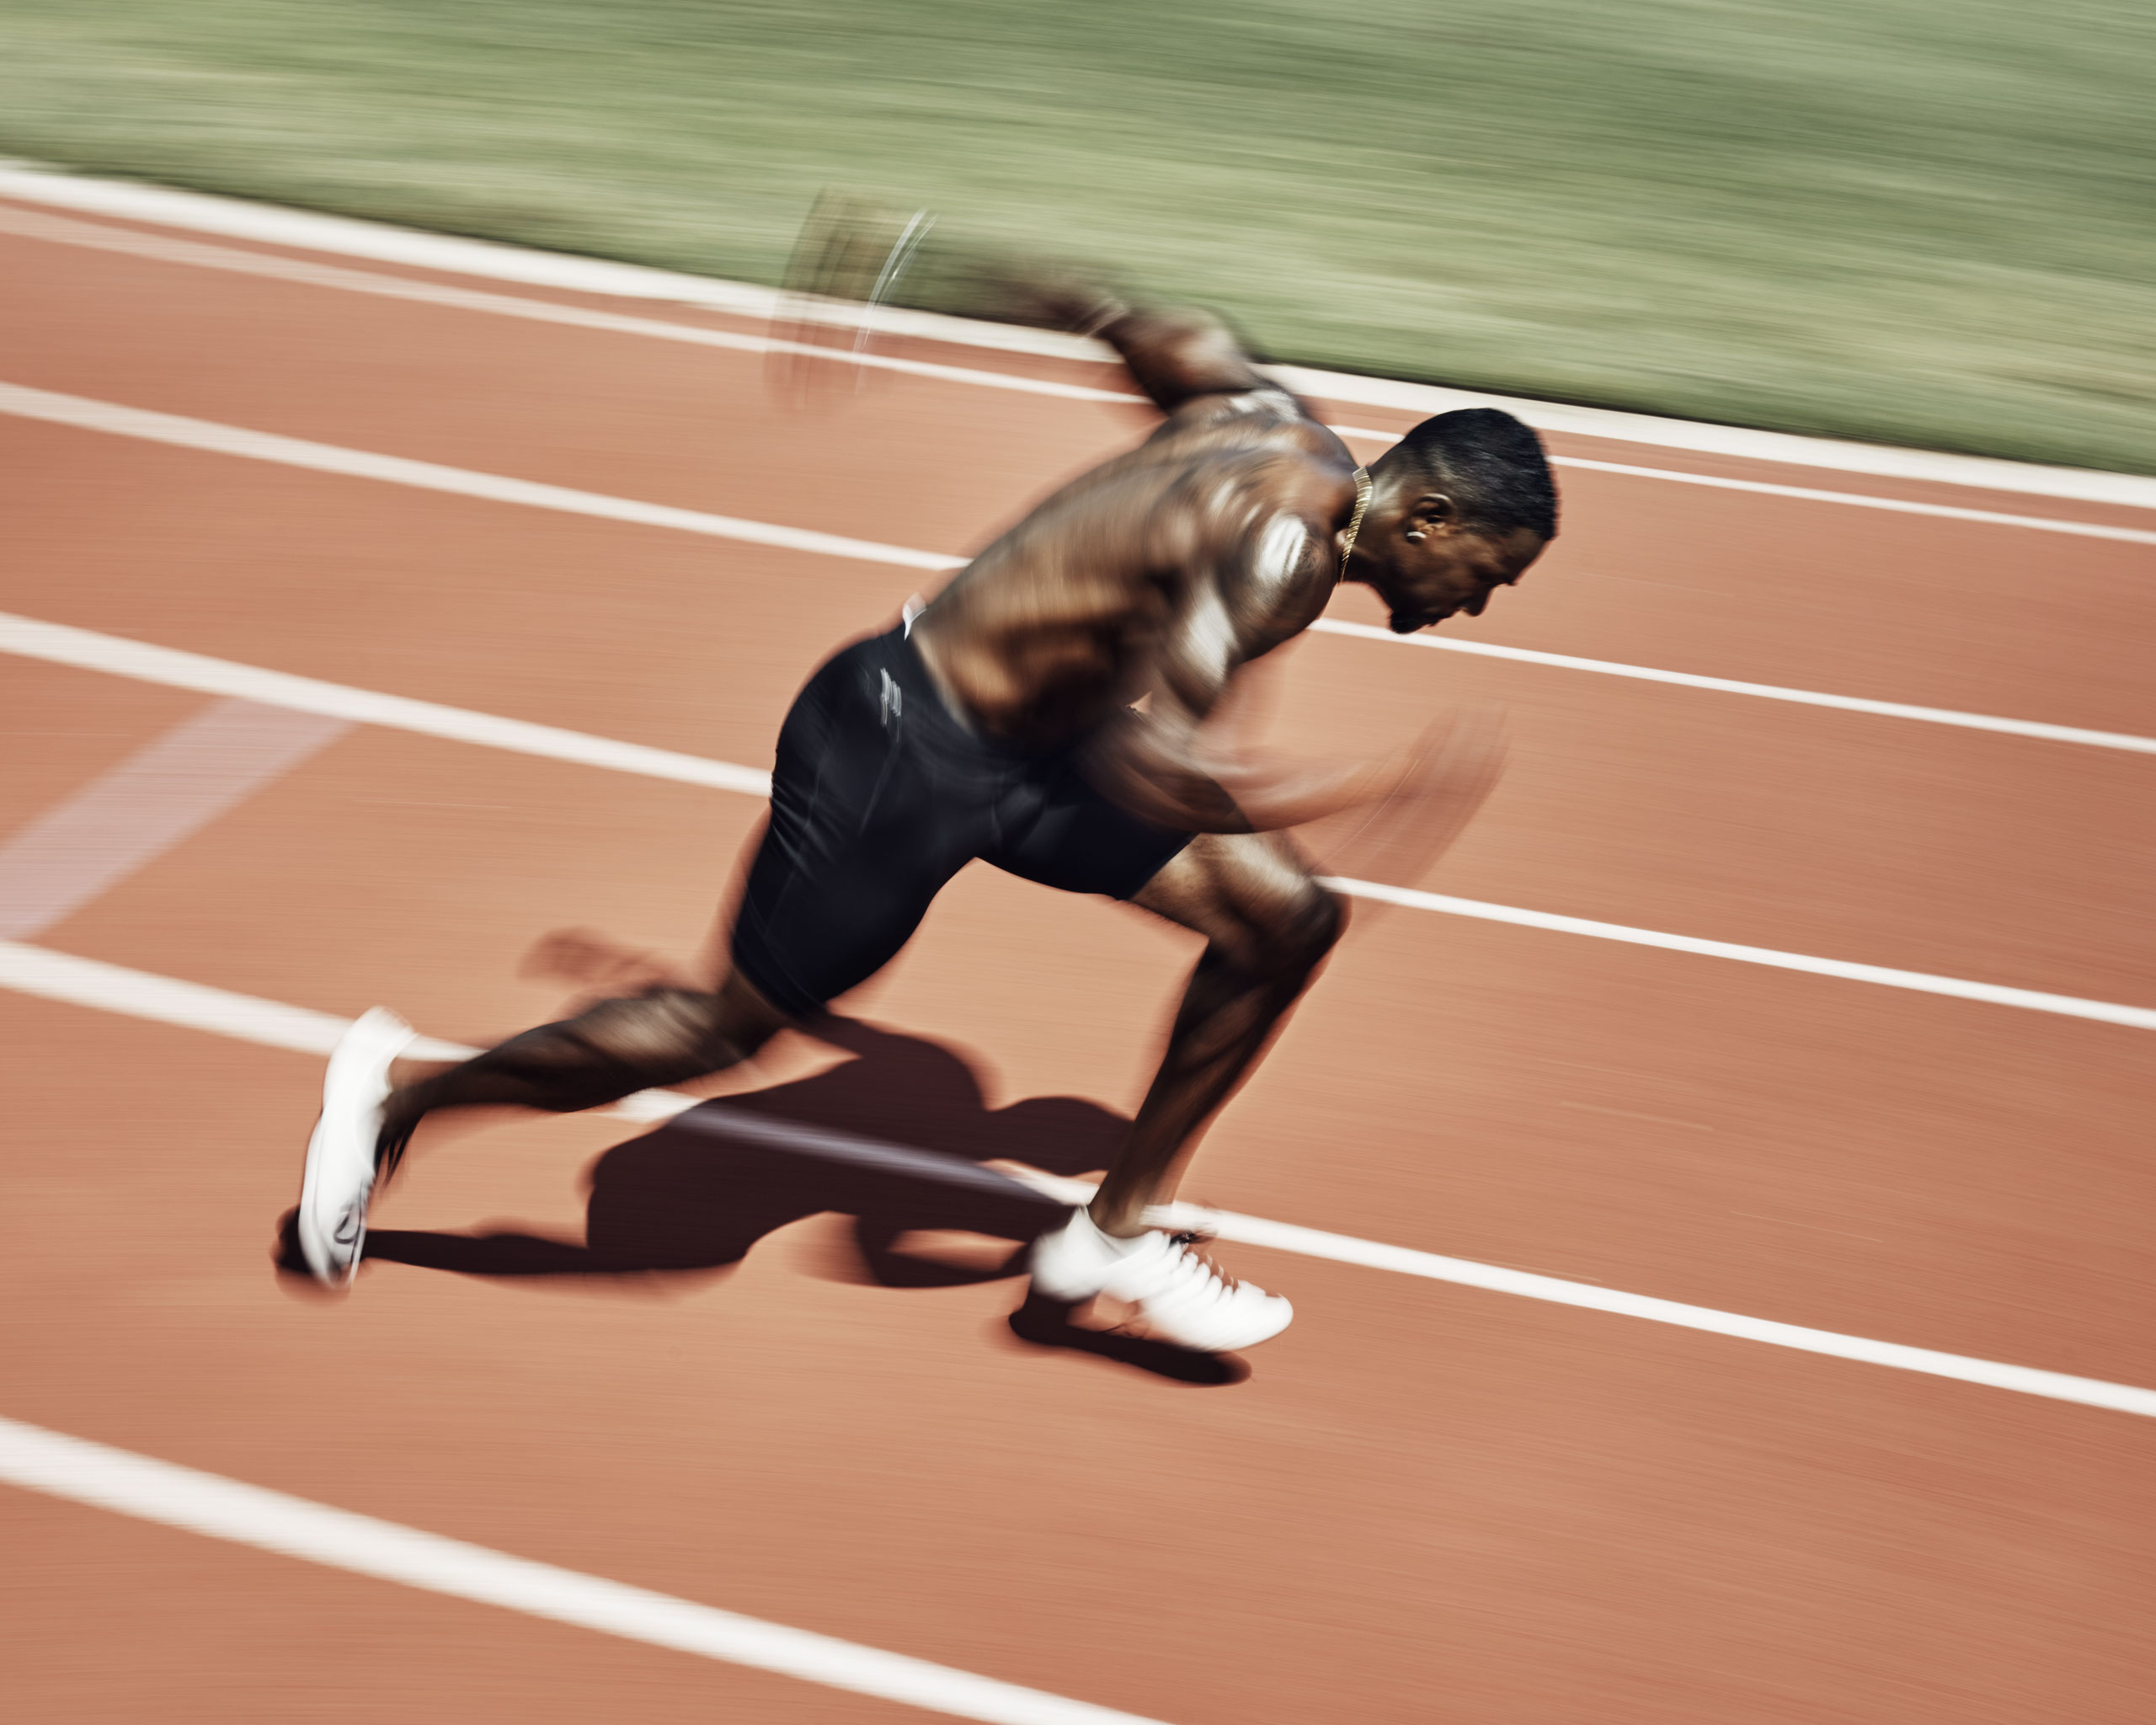 Gold Medalist sprinter Justin Gatlin practices at Montverde Academy in Montverde, Fla. on Fri. July 22, 2016.From  Finding Poetry in Sport Photography